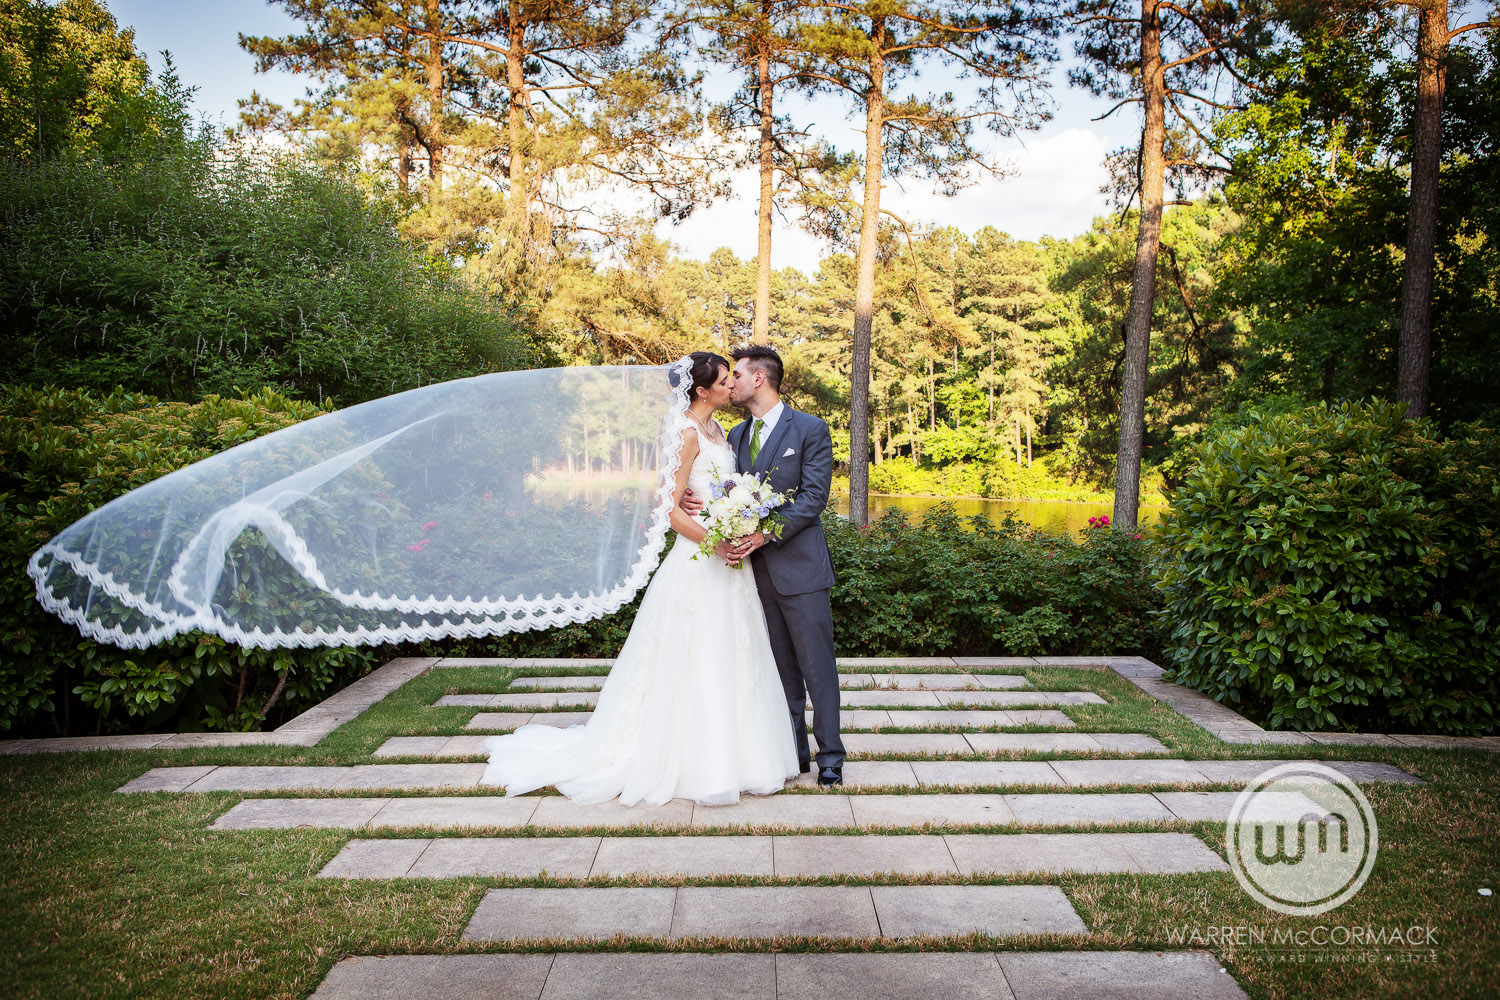 Raleigh Wedding Photographer, Cary NC, The Umstead Hotel and Spa, Warren McCormack, Halbur